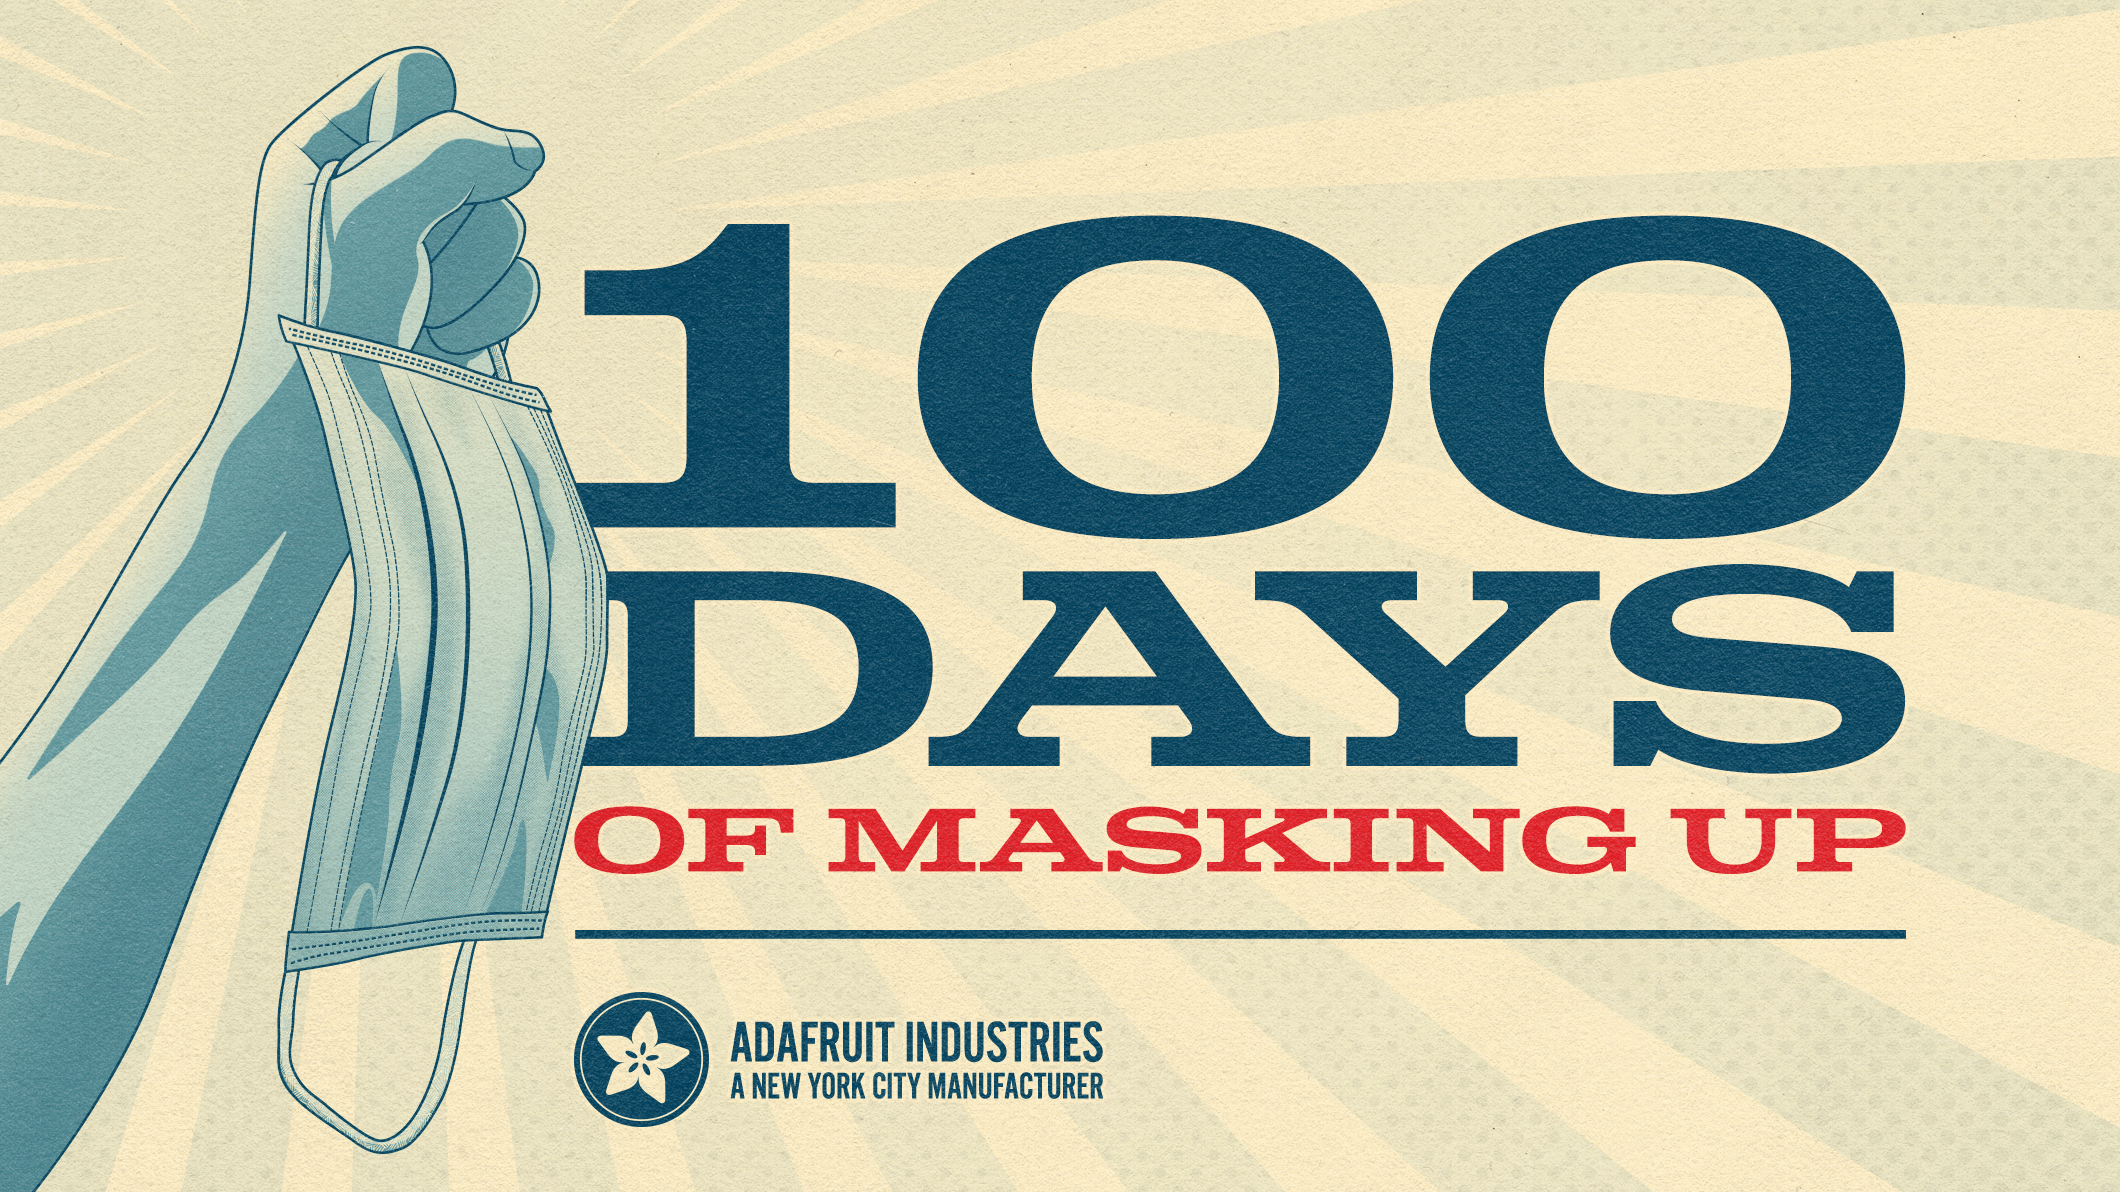 100 Days of Masking Up. A hand holds up a surgical mask in solidarity.